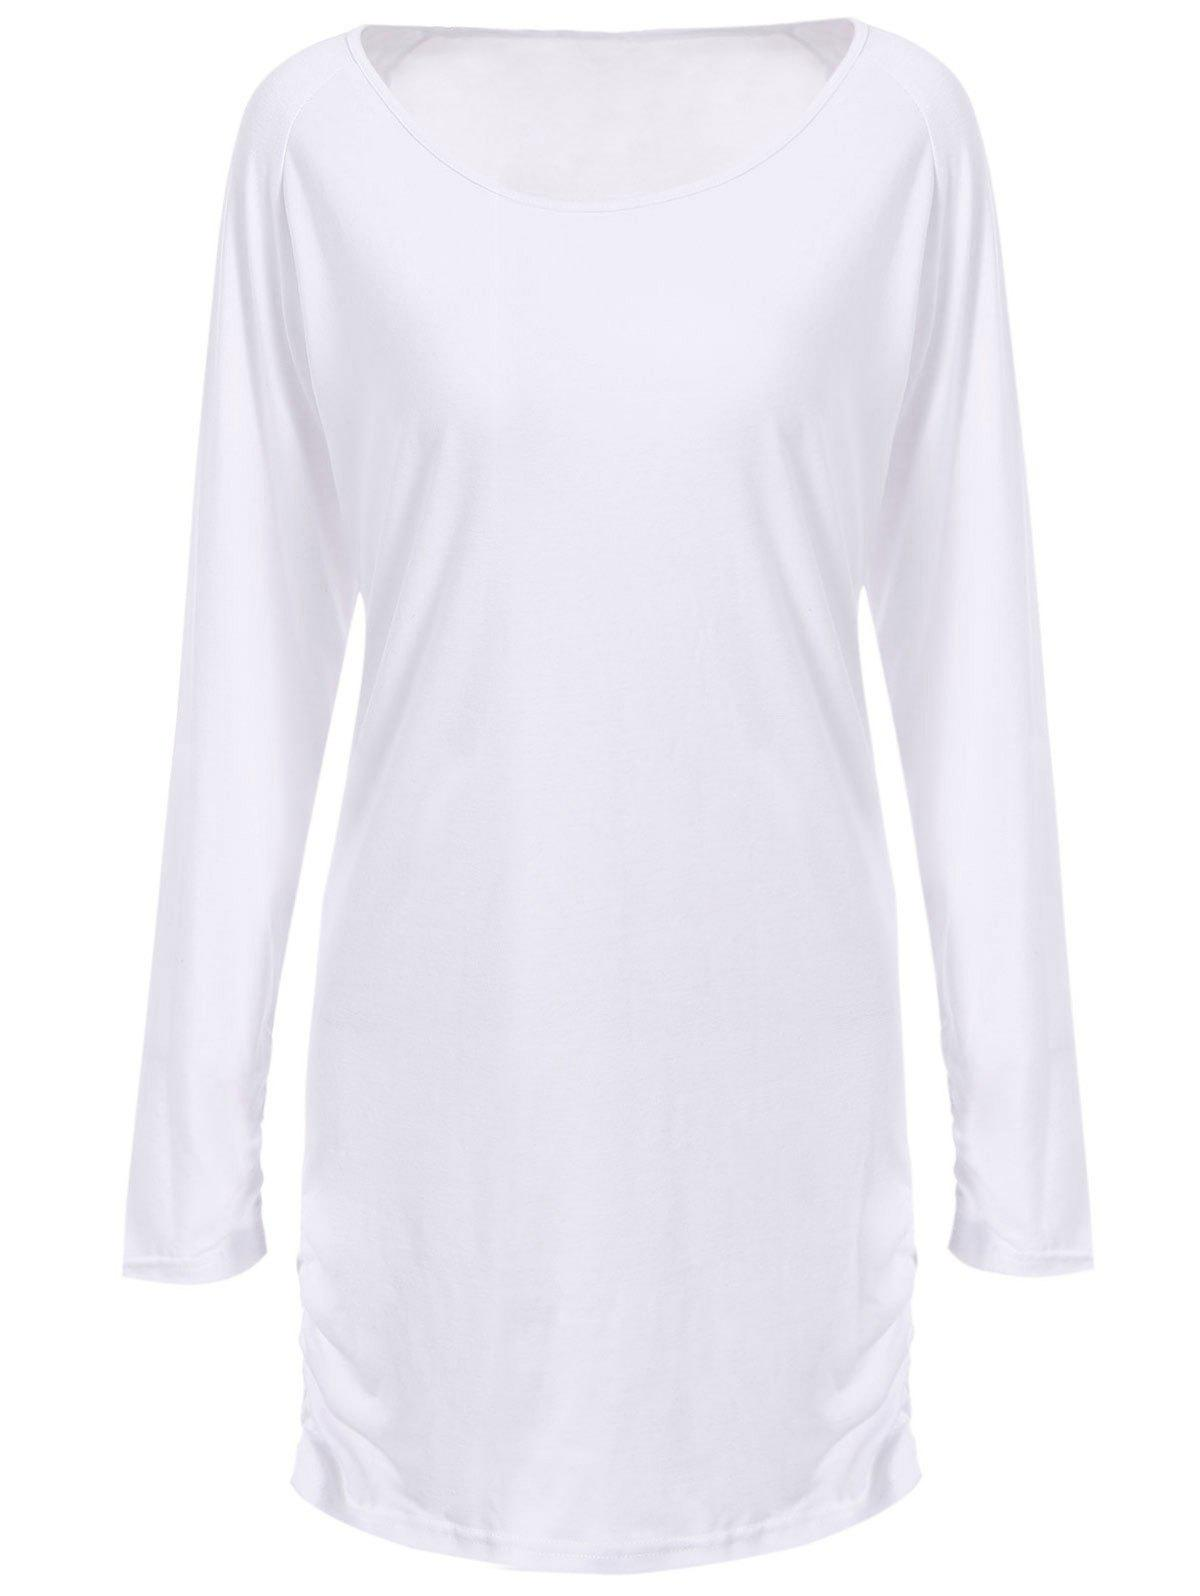 Chic Scoop Collar Long Sleeves Ruffled Pure Color Women's T-Shirt - WHITE M